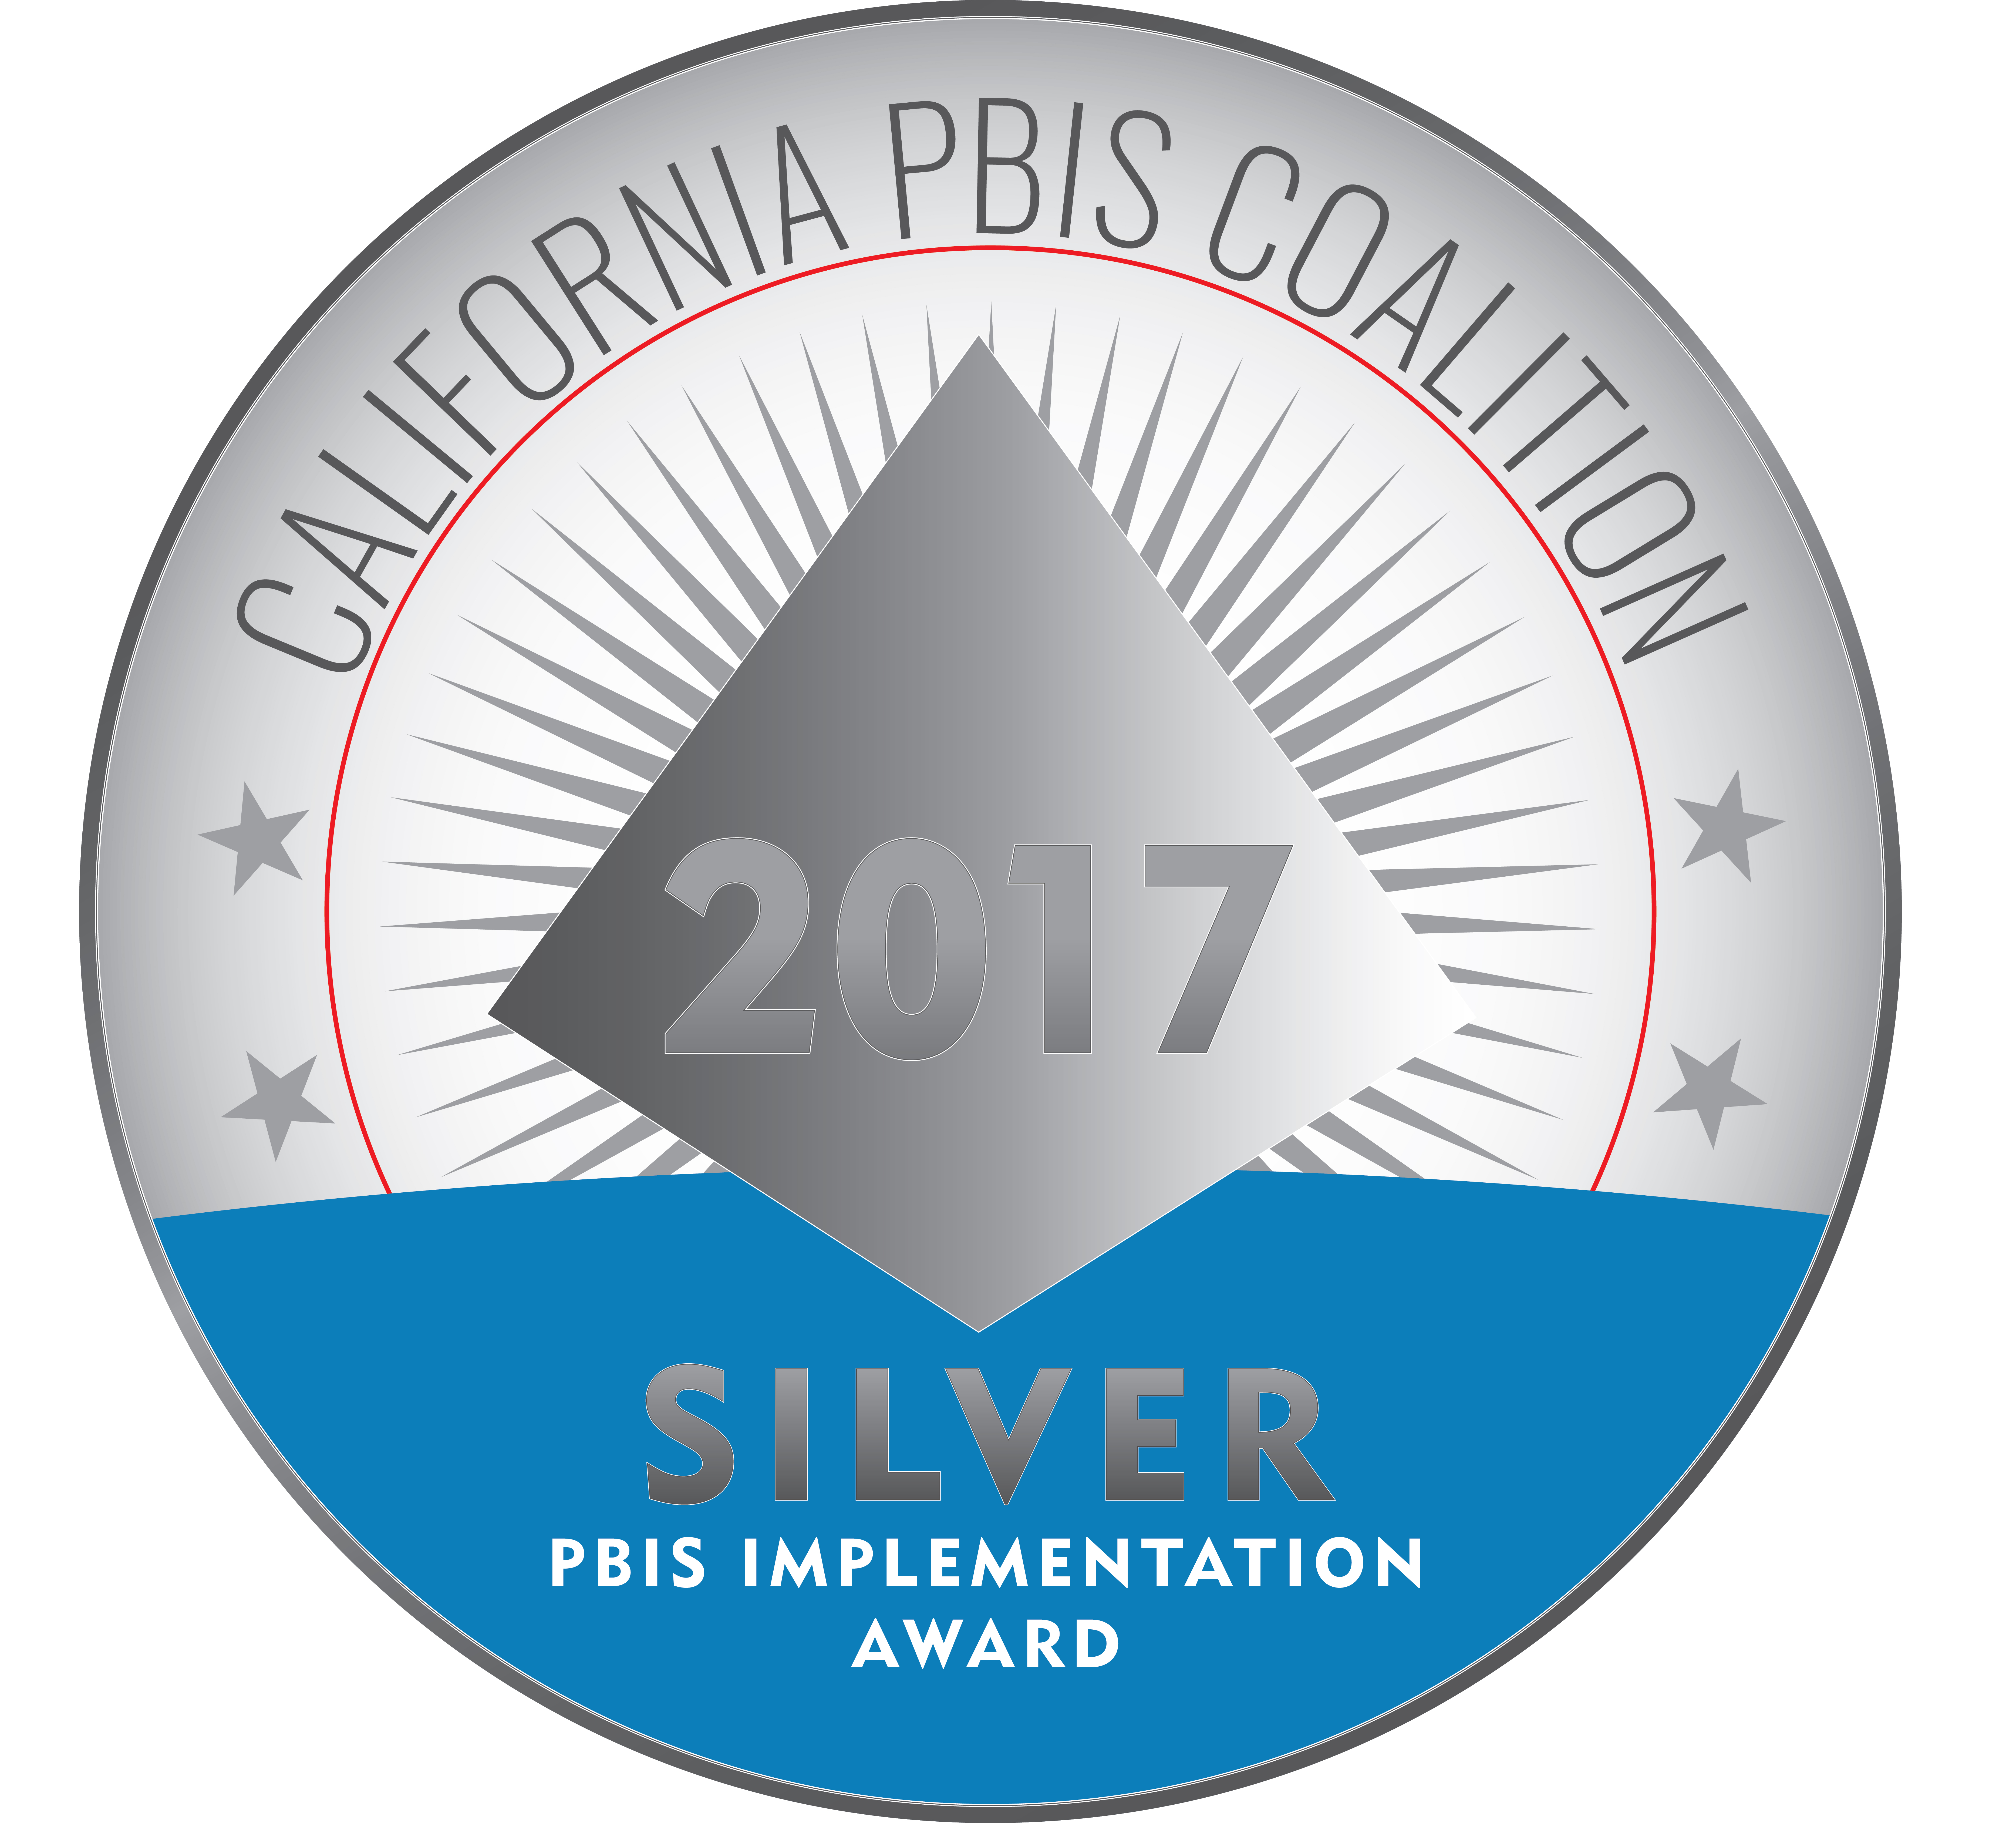 PBIS recognition award from the CA PBIS Coalition.